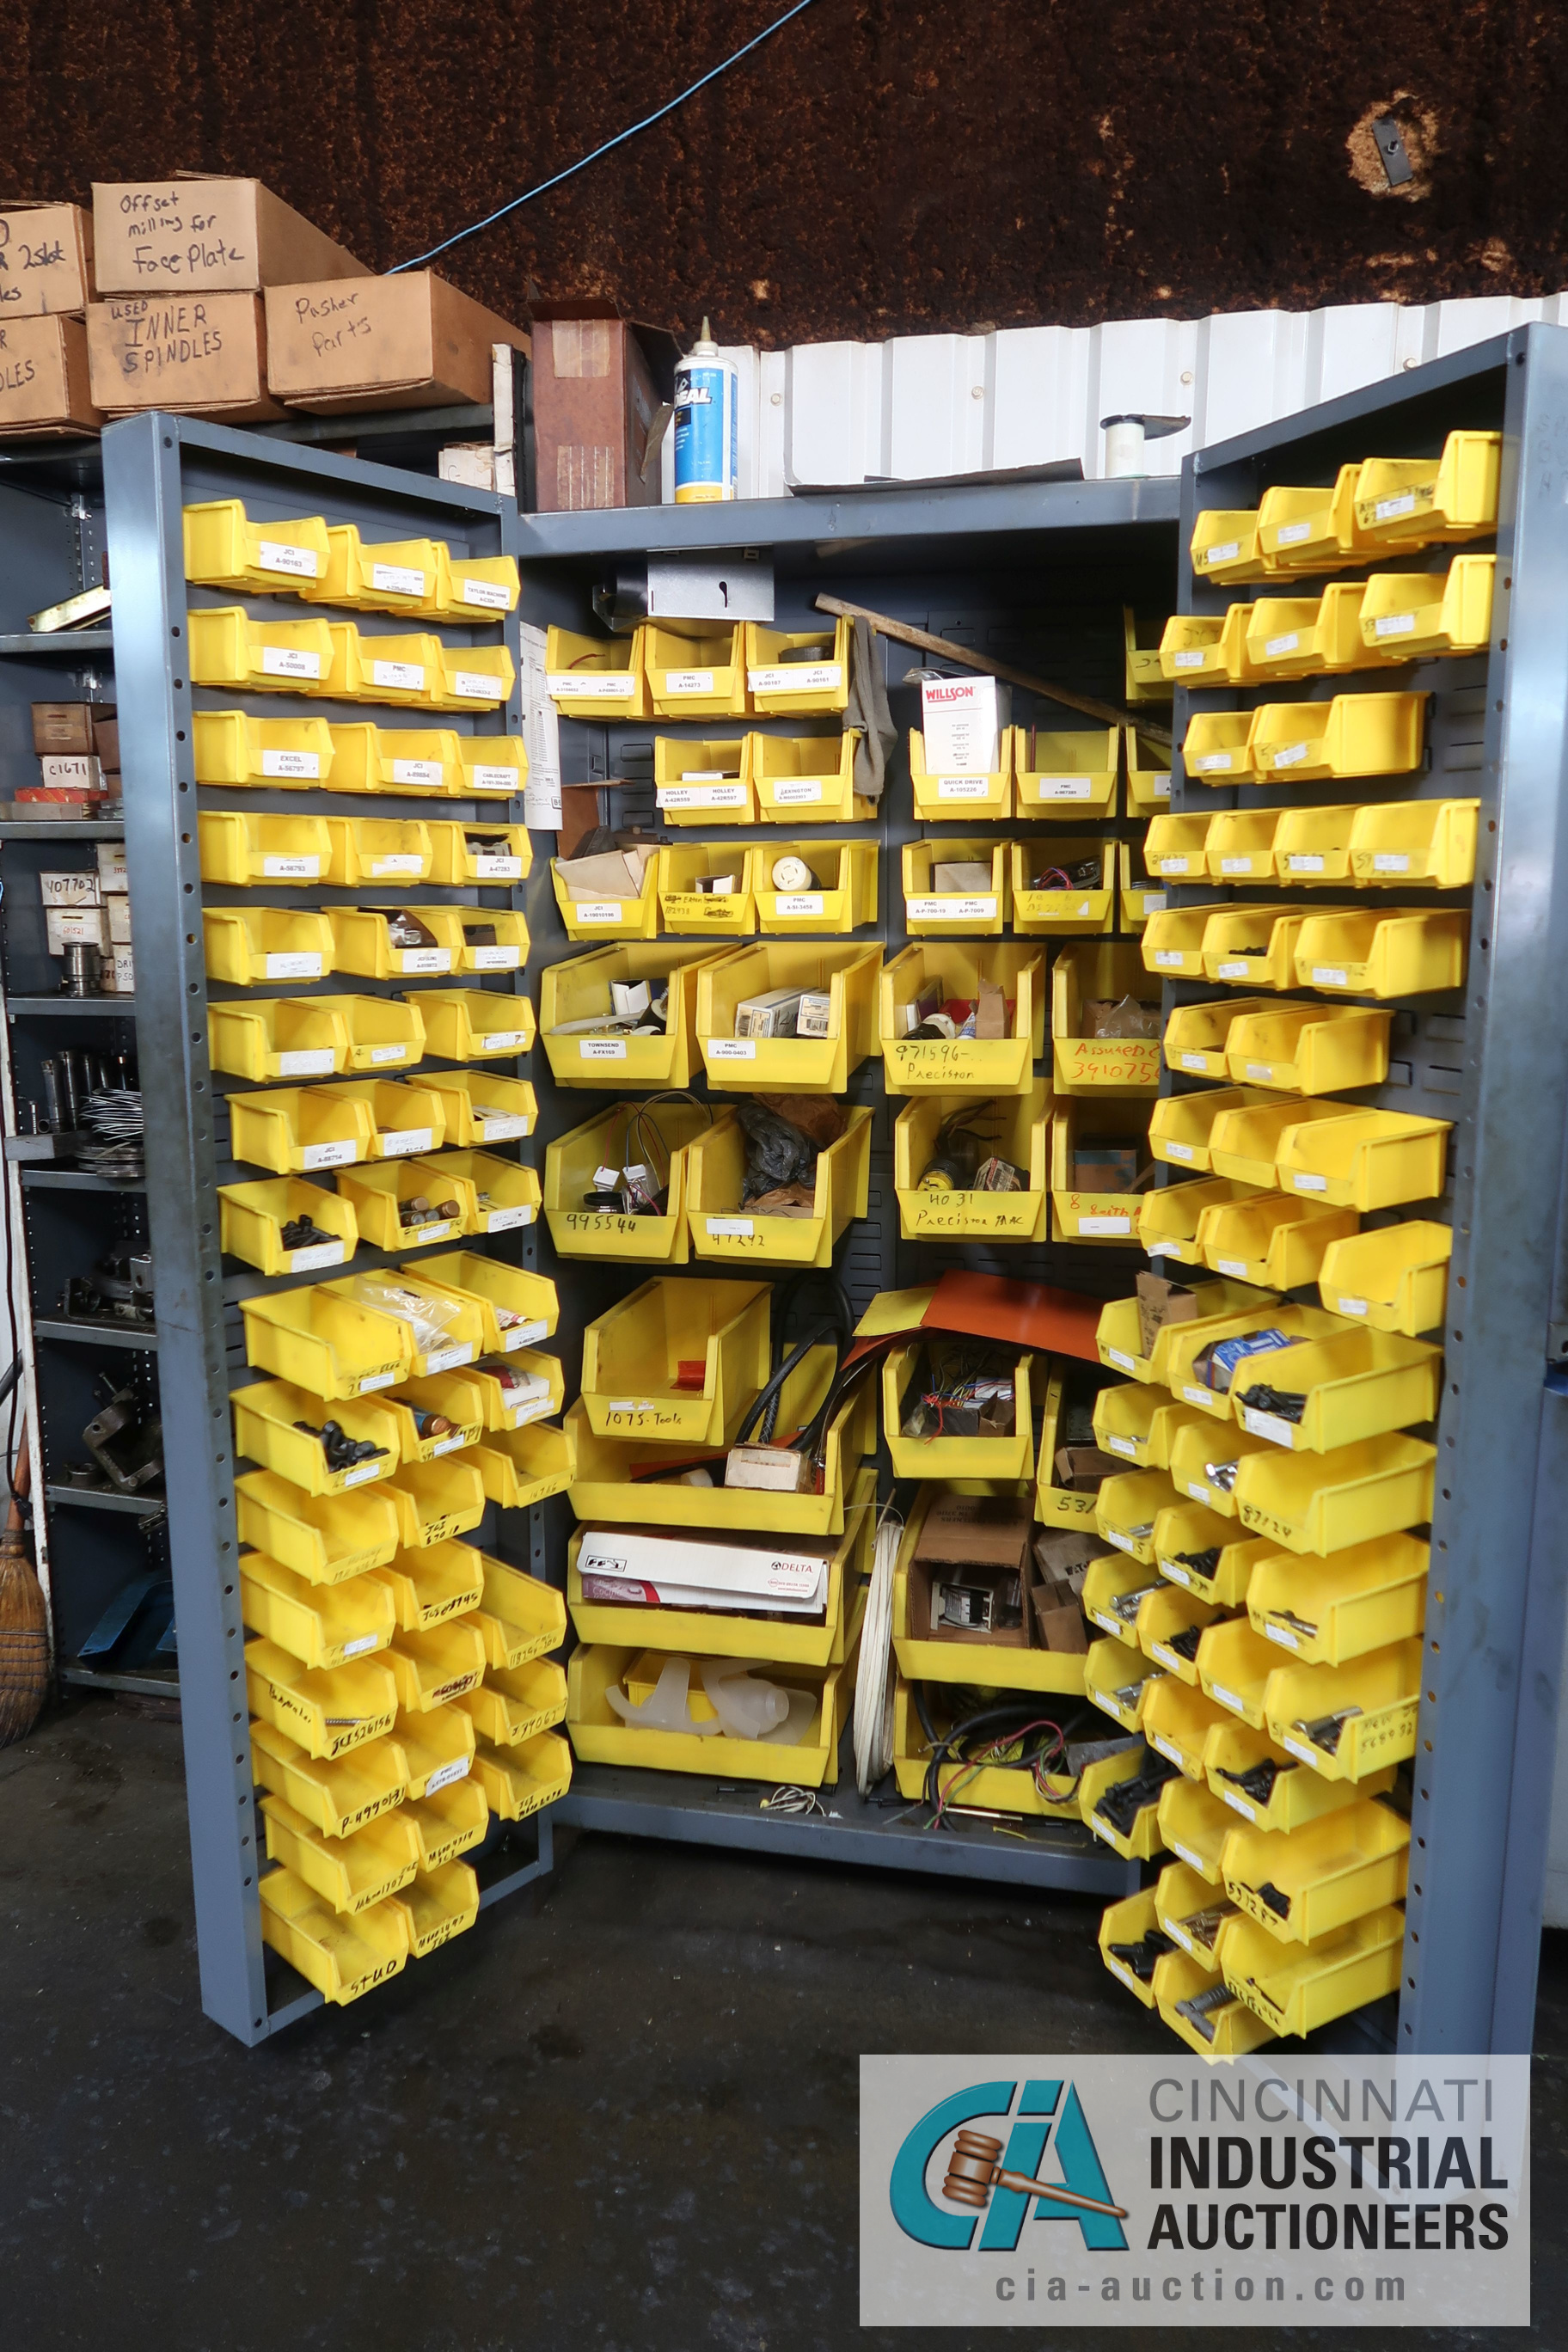 (LOT) MISCELLANEOUS ELECTRICAL AND HARDWARE WITH TWO-DOOR STRONGHOLD STYLE BIN CABINET - Image 2 of 5